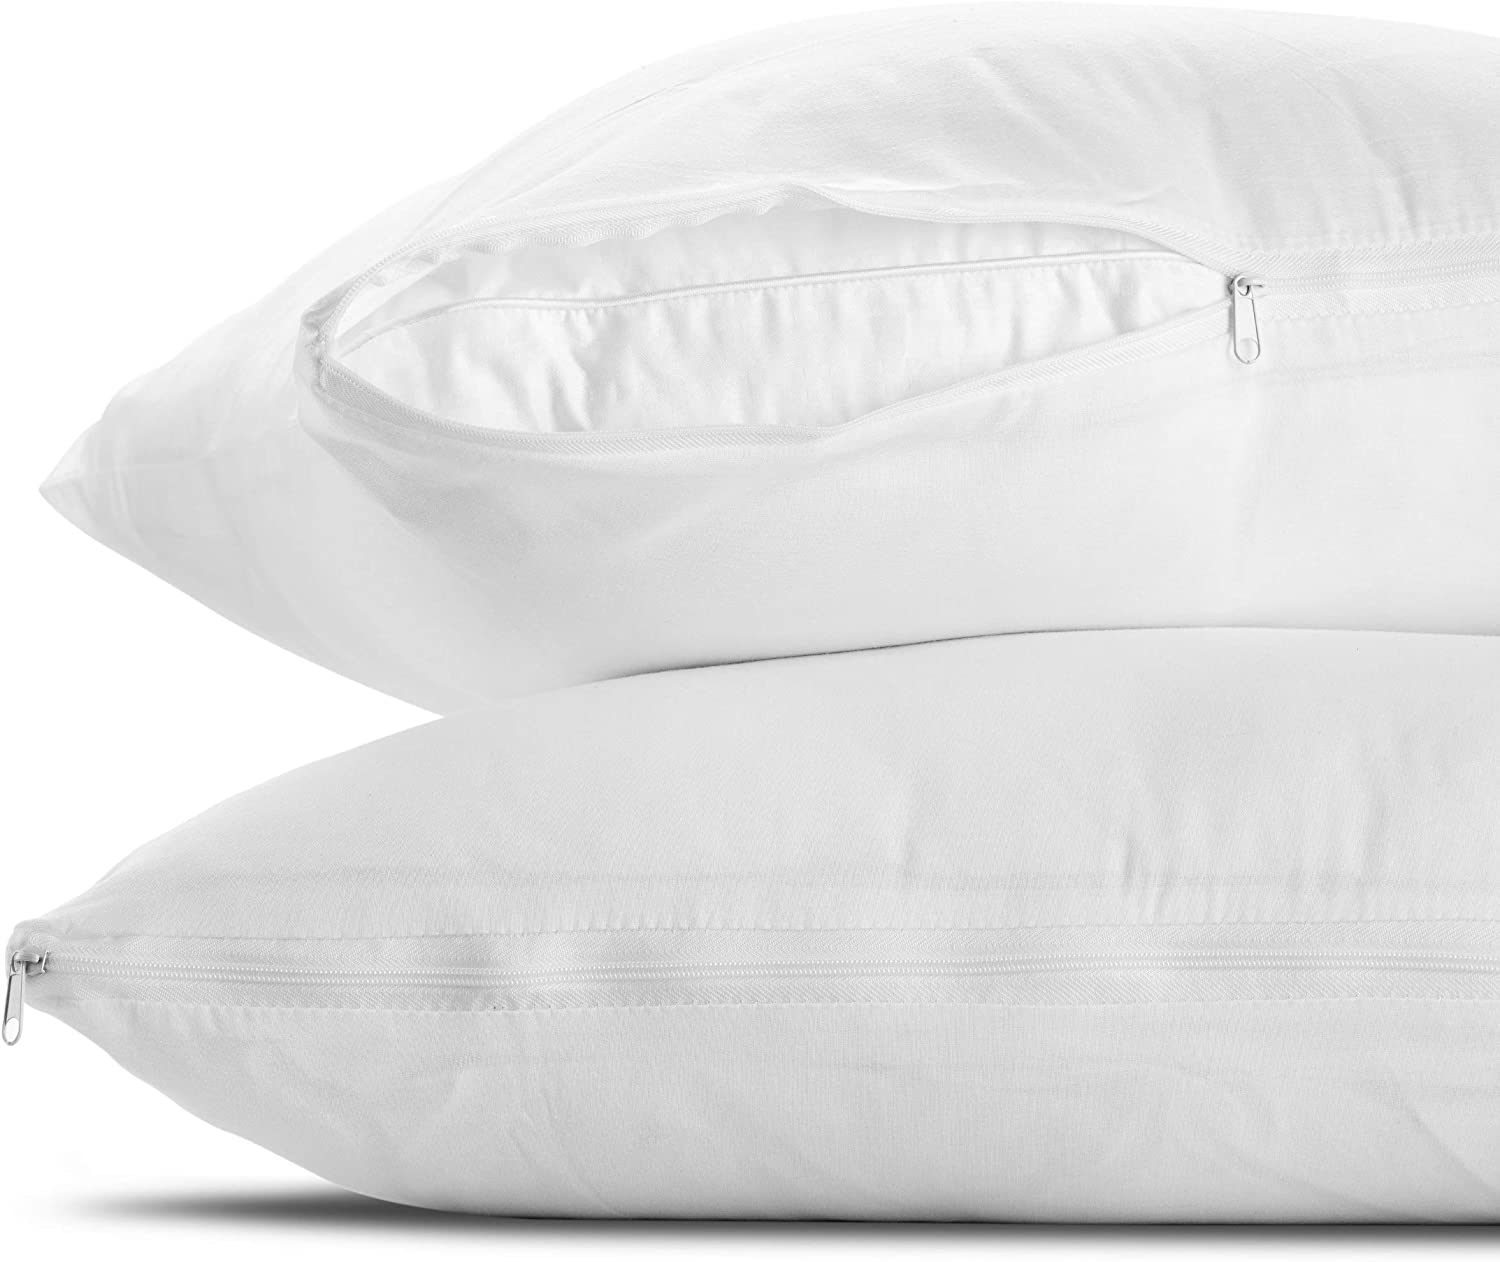 Mastertex Pillow Protectors Standard Zippered Cases 2-Pack | Poly Cotton Pillow Covers Hypoallergenic | Breathable and Quiet (Set of 2 - Standard Size)